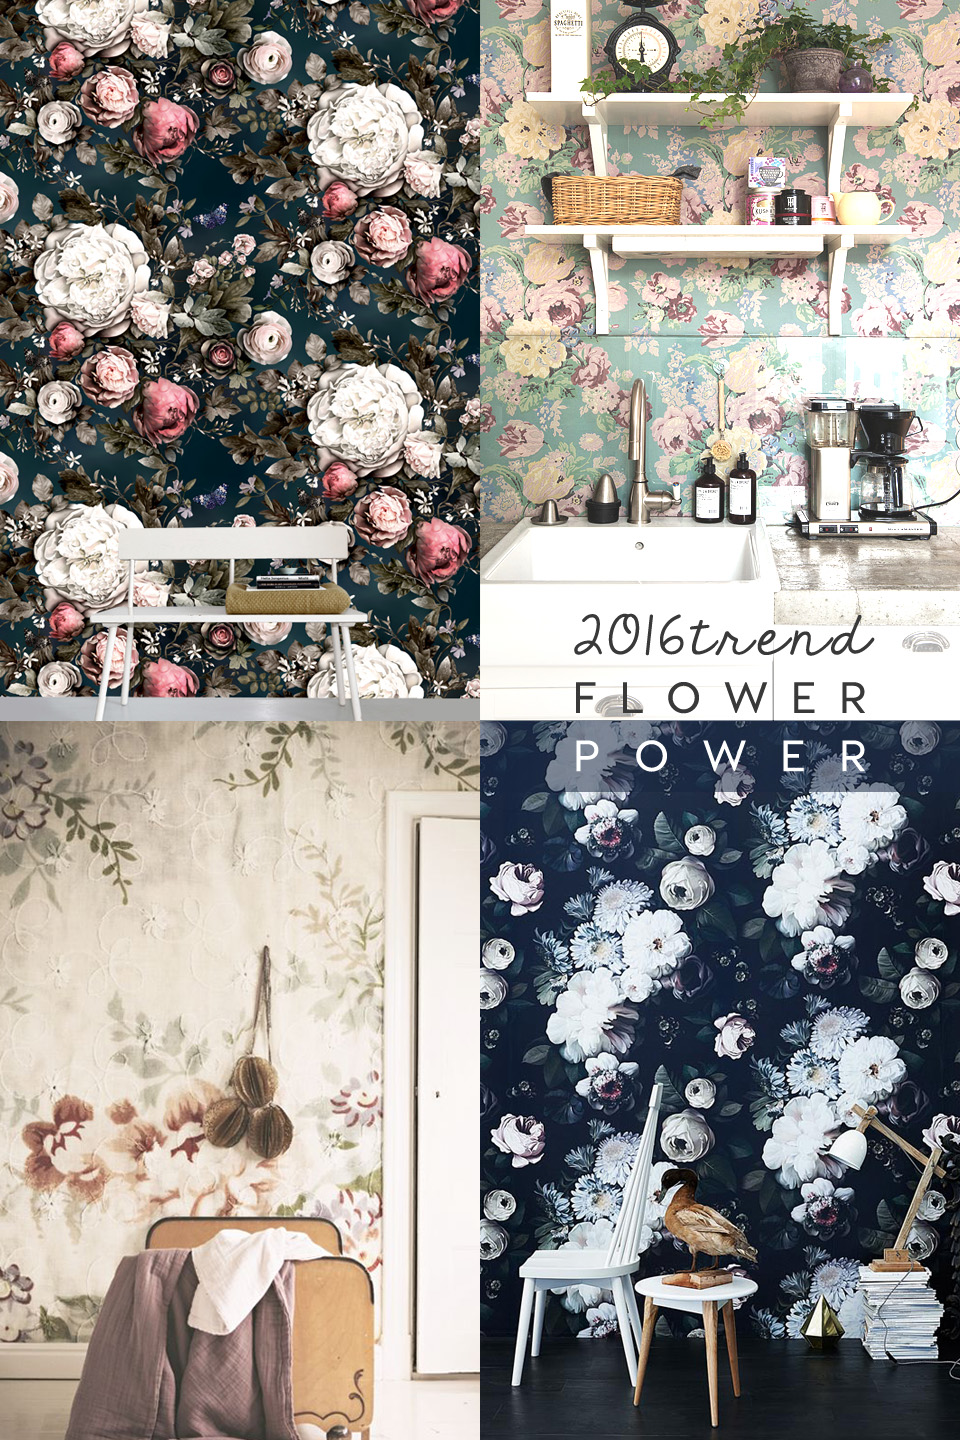 FLOWER POWER | INTERIOR TREND